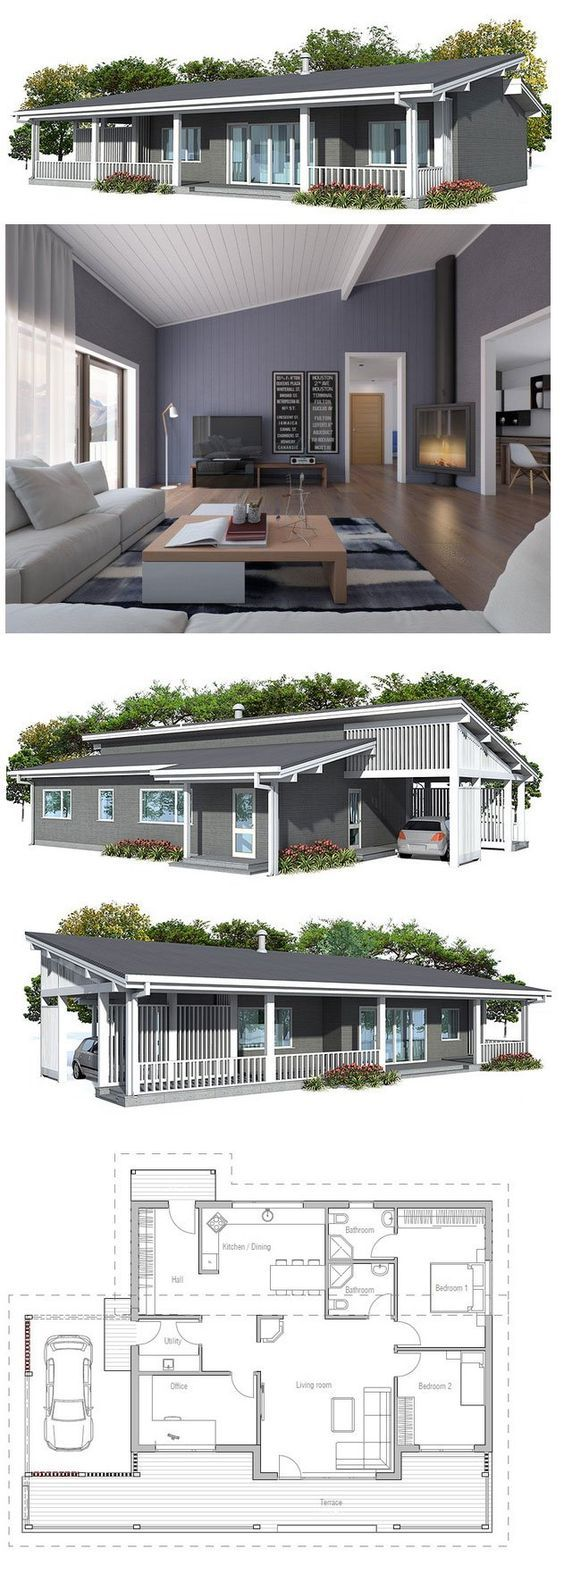 Small house plan in modern architecture three bedrooms suitable to small lot spacious